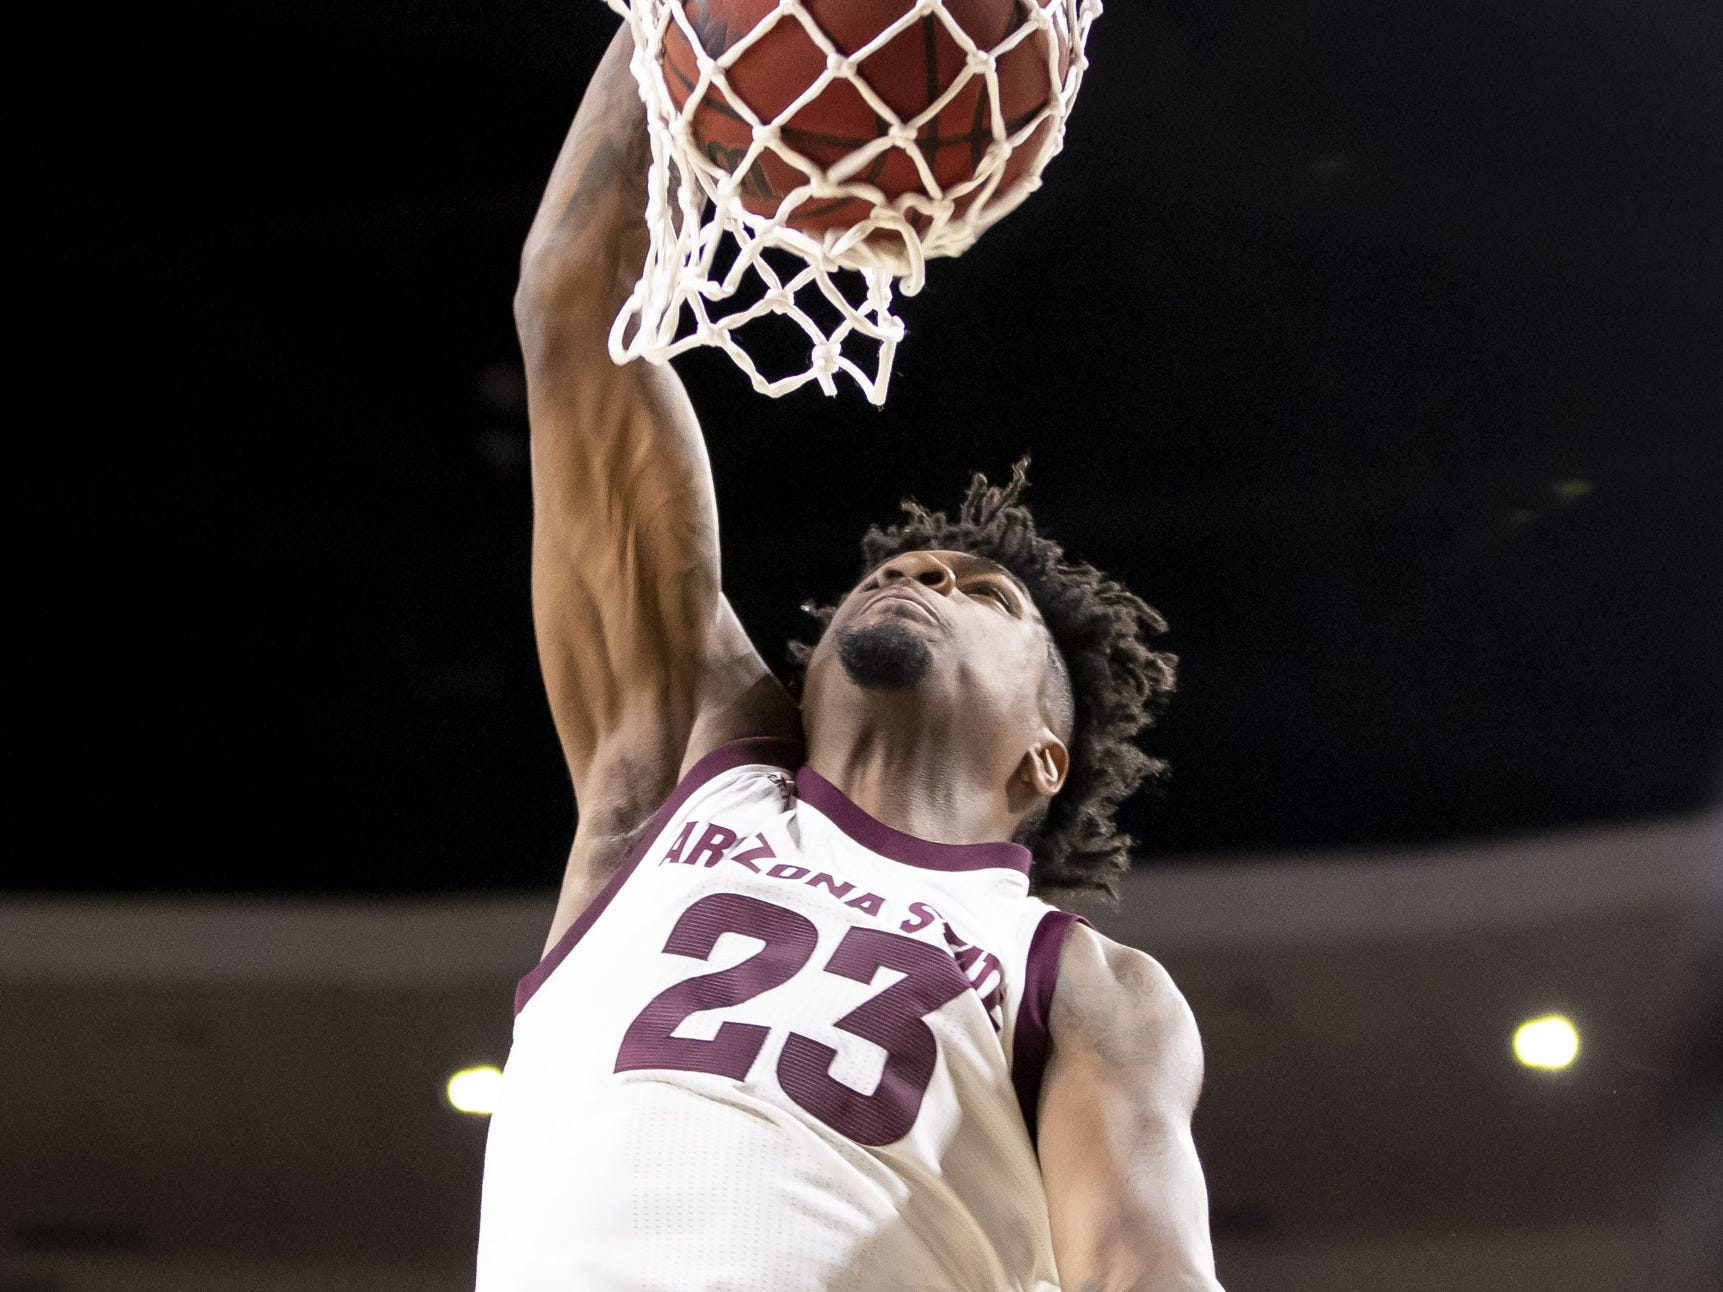 Forward Romello White (23) of the Arizona State Sun Devils dunks against the Cal State Fullerton Titans at Wells Fargo Arena on Tuesday, November 6, 2018 in Tempe, Arizona.